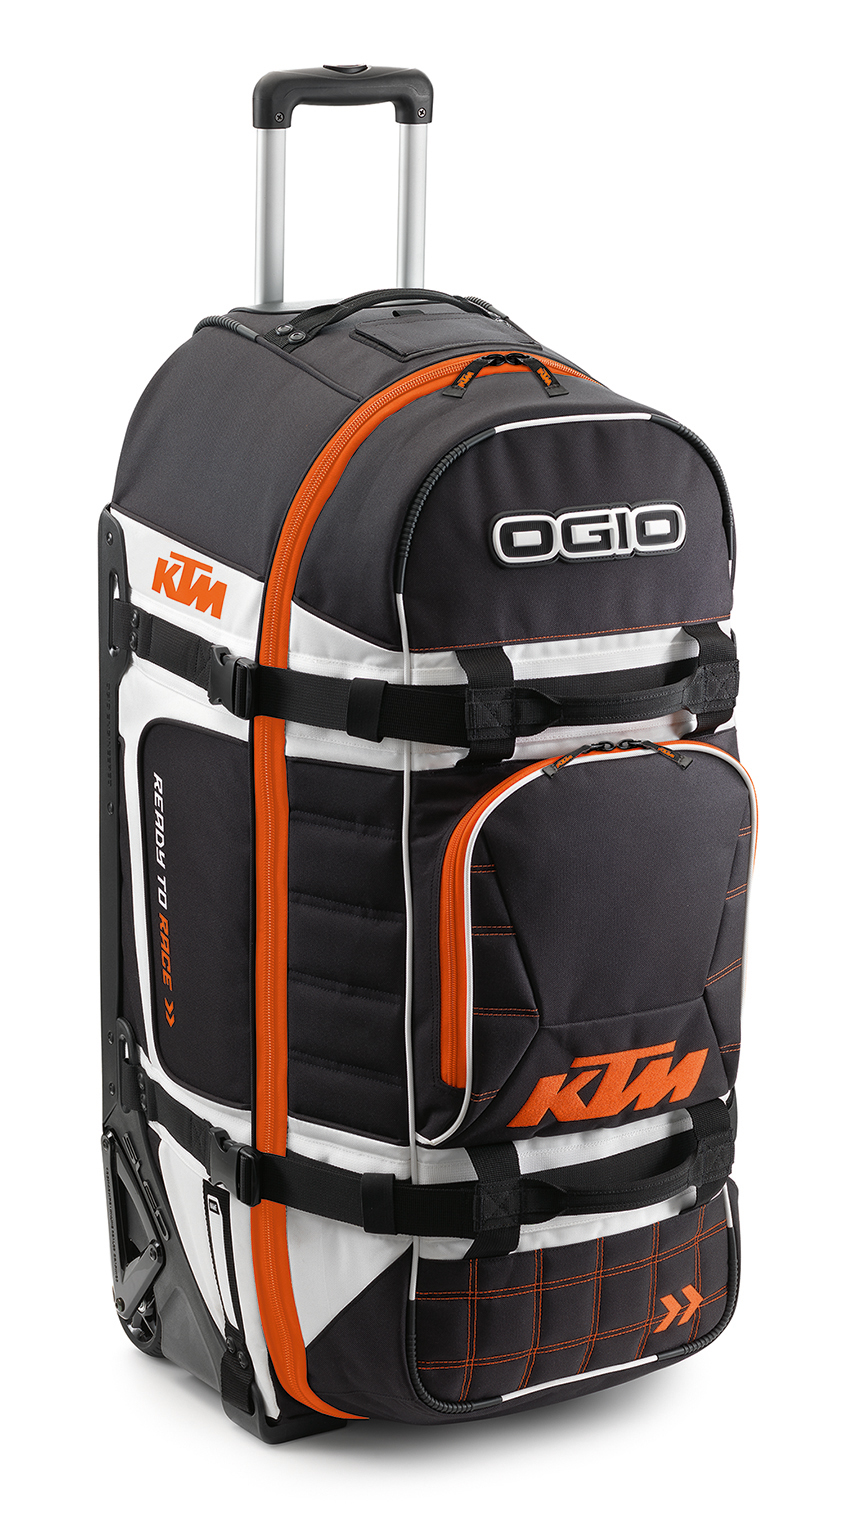 76b2dfd3a524 AOMC.mx: 2016 KTM Racing Travel Bag 9800